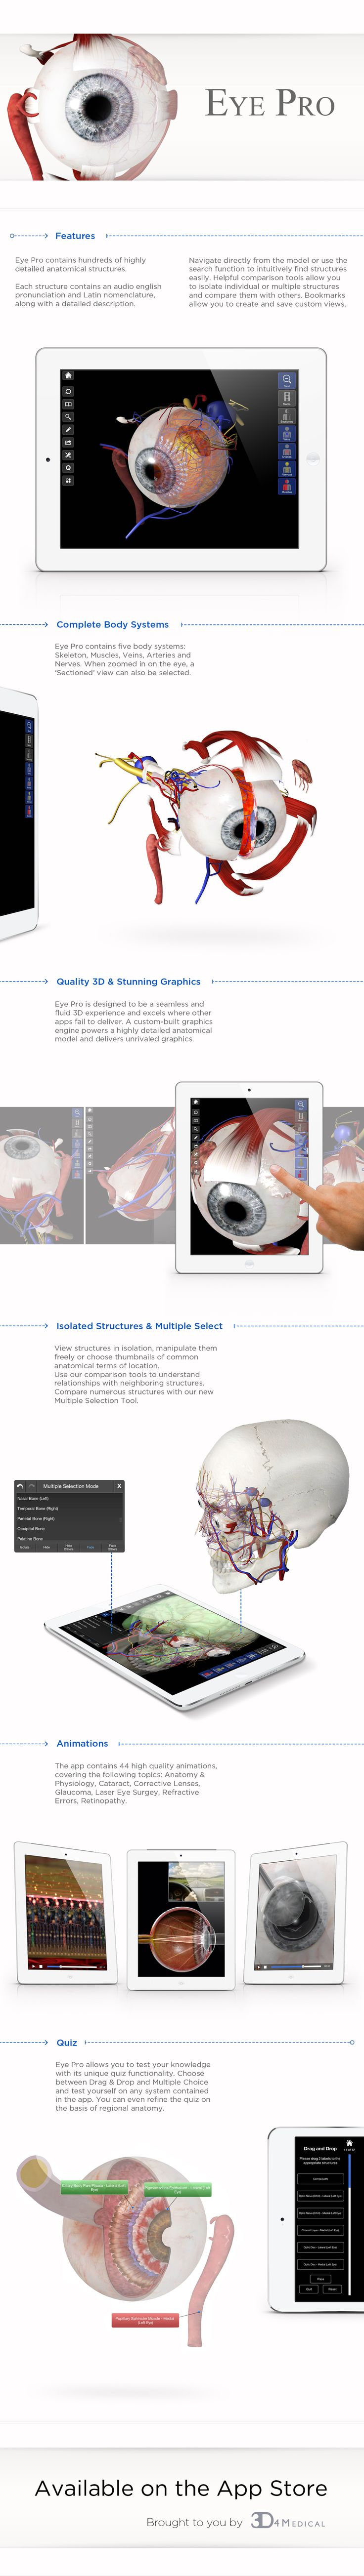 The 117 best EYE images on Pinterest | Faces, Medical science and ...